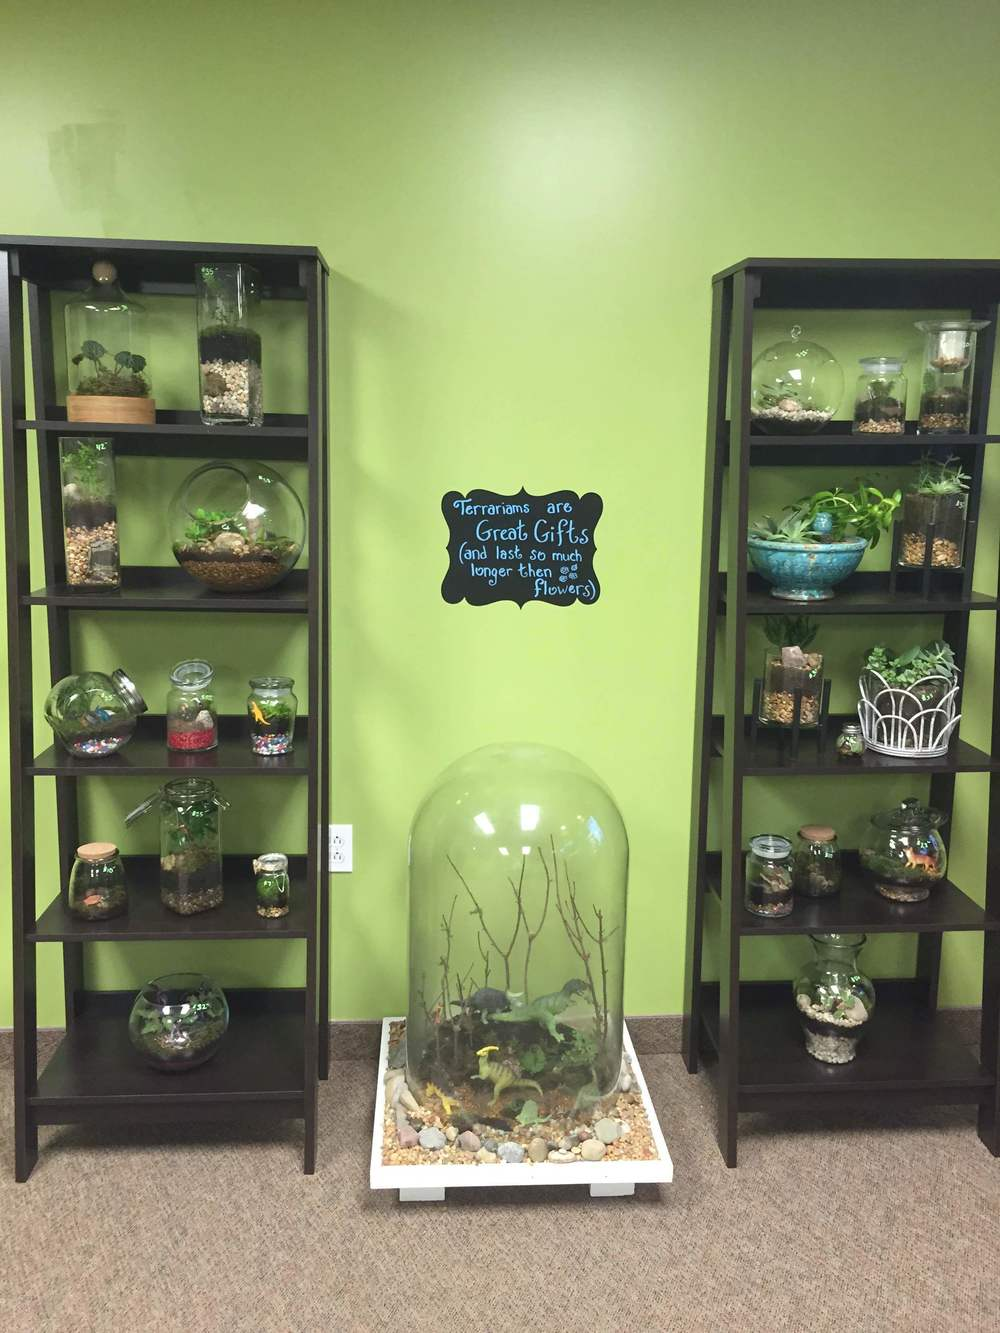 Stop in and check out that GIANT terrarium!